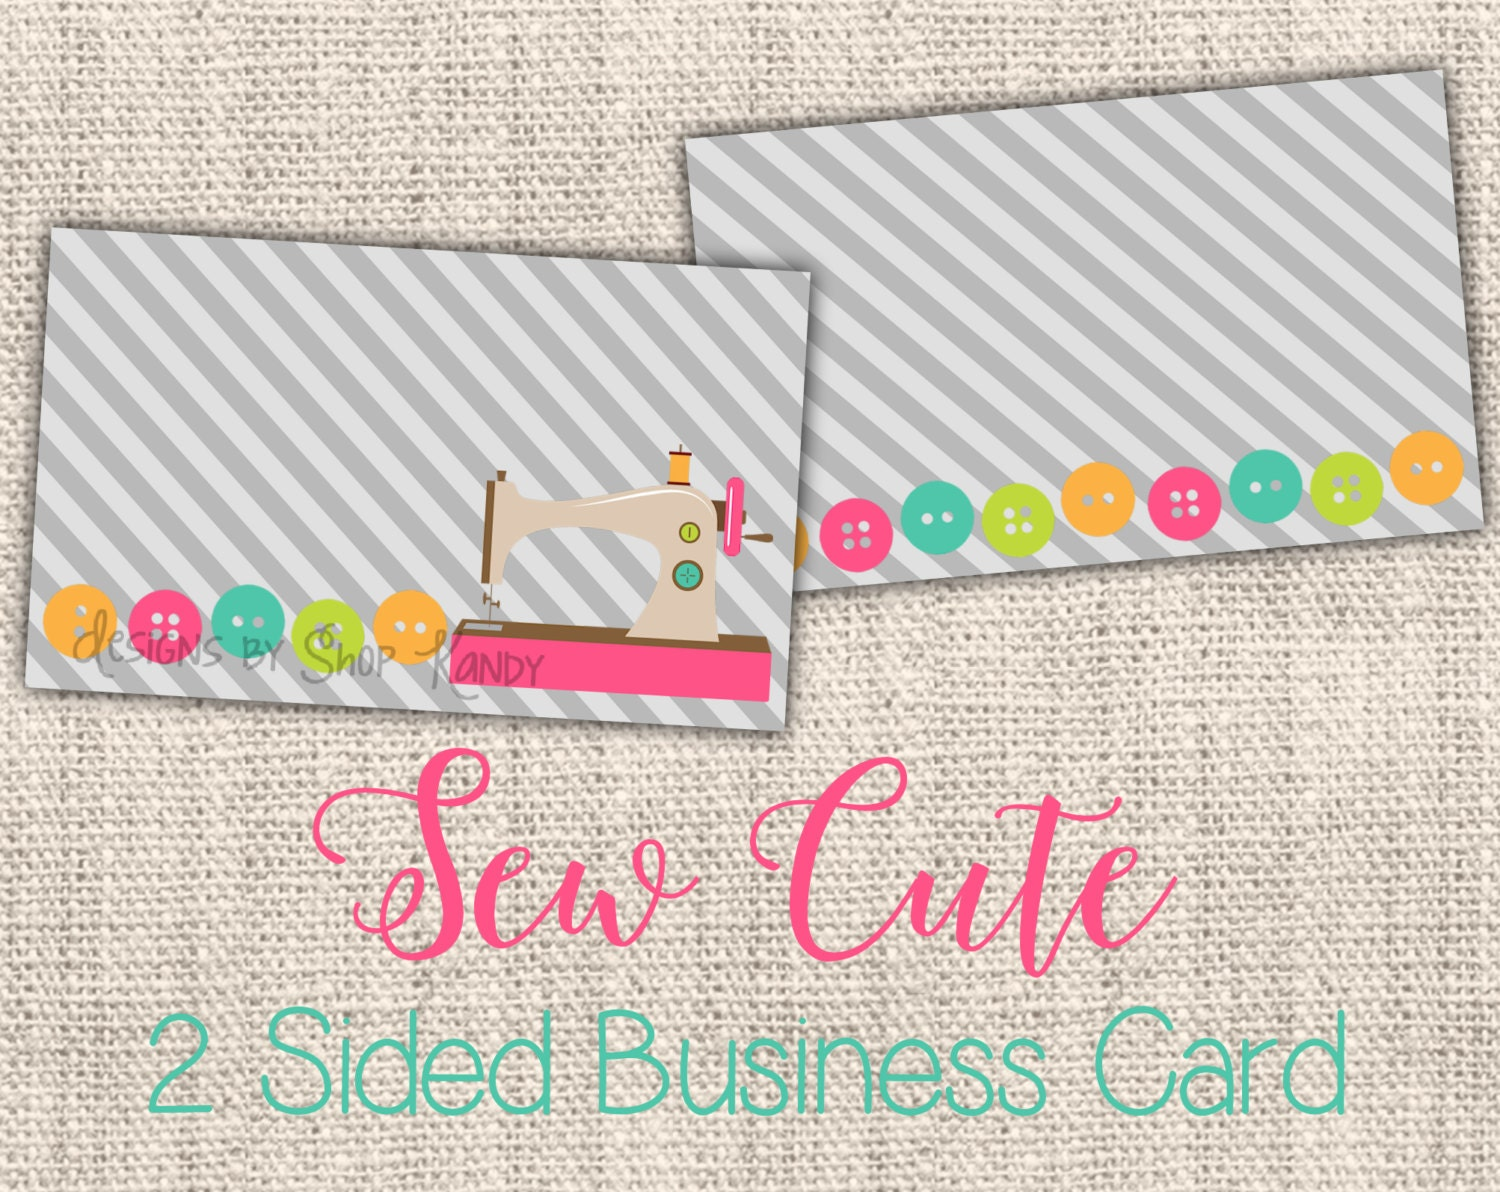 Sewing business card 2 sided embroidery business card for 2 sided business cards templates free